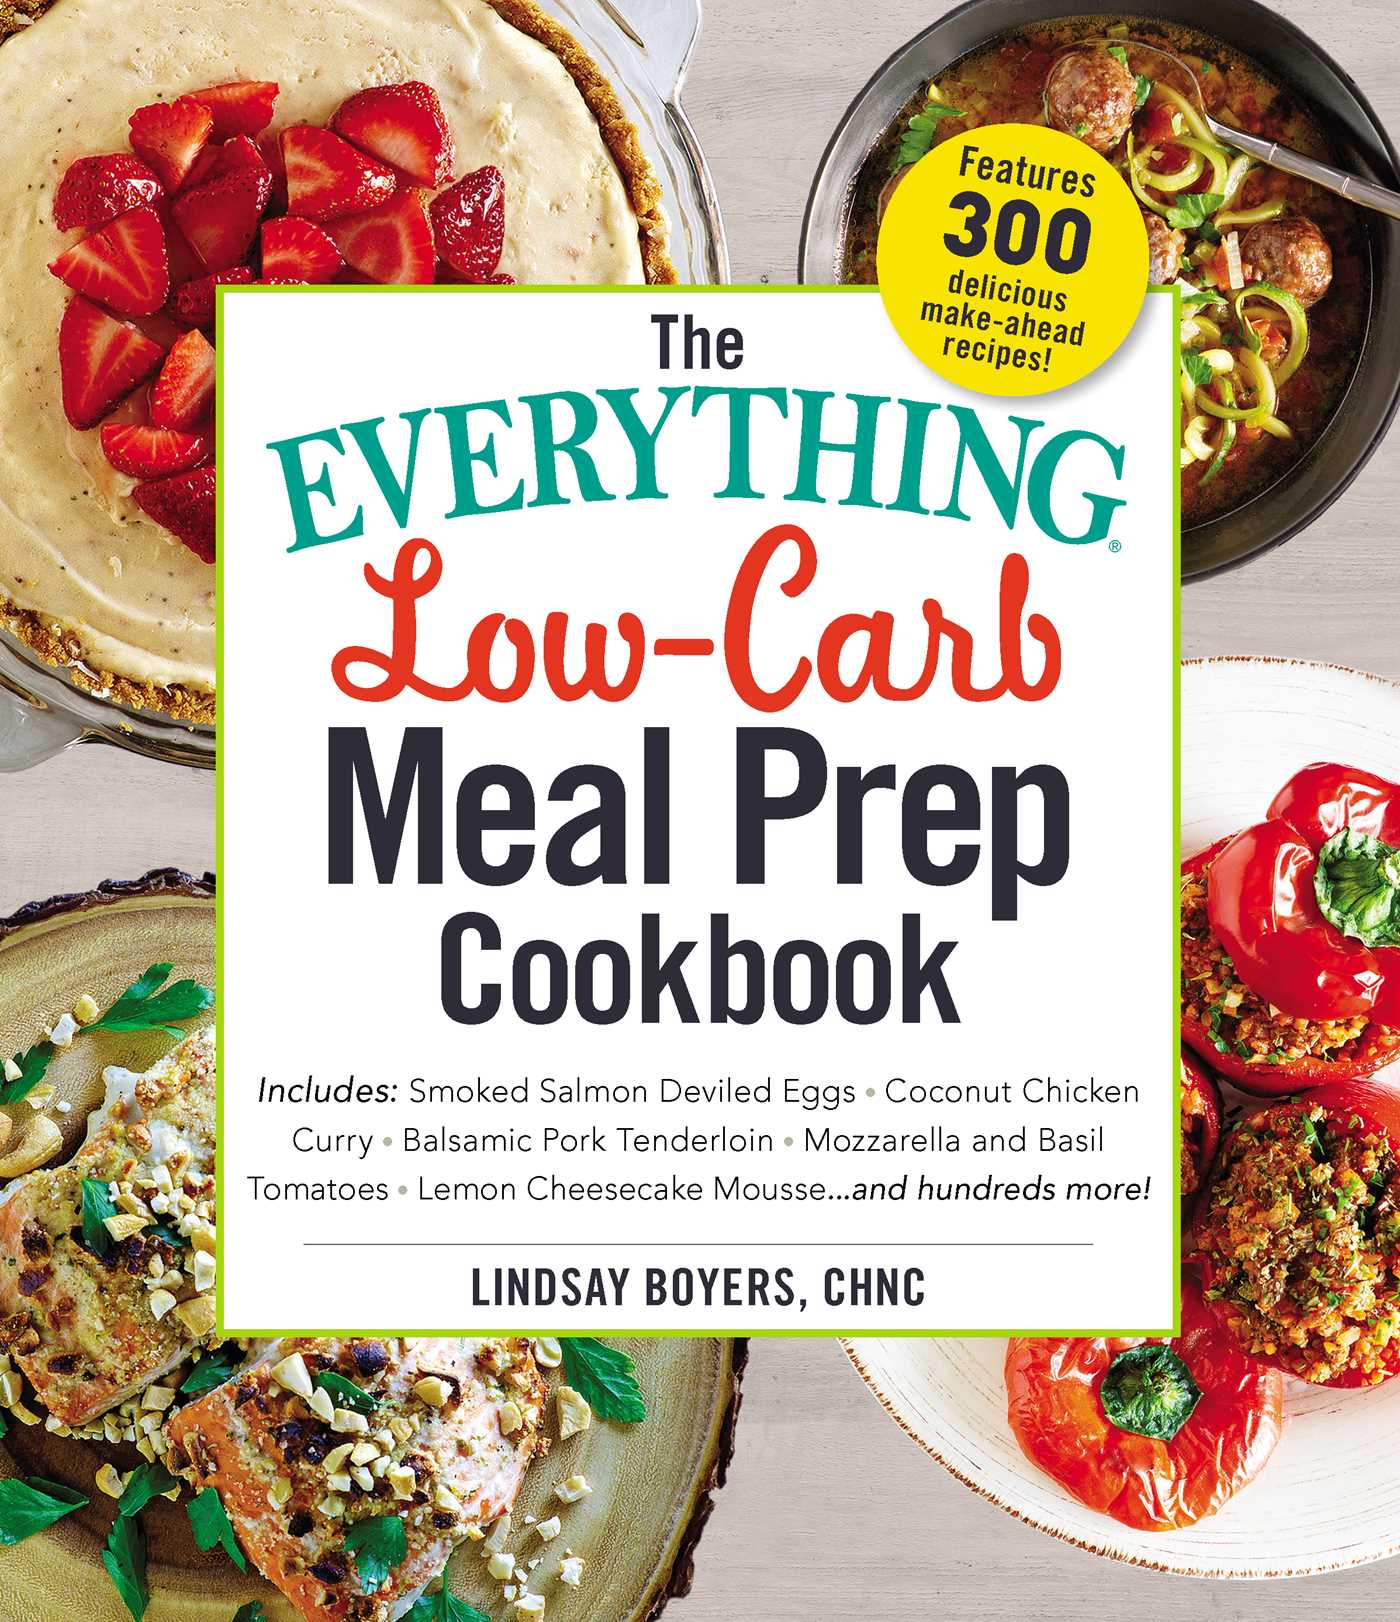 The everything low carb meal prep cookbook book by lindsay boyers book cover image jpg the everything low carb meal prep cookbook forumfinder Images